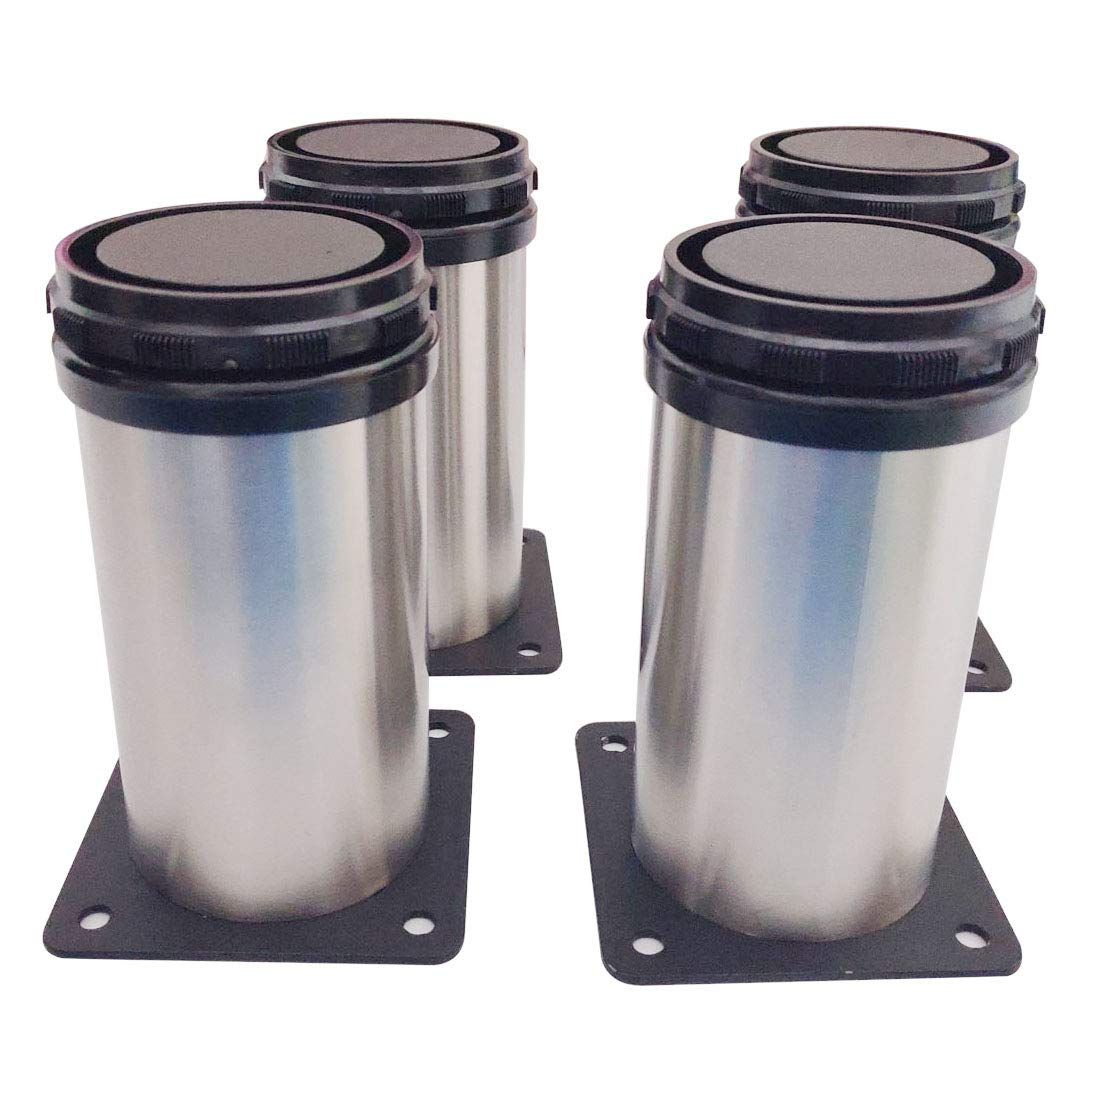 Sipery 4Pcs Stainless Steel Adjustable Furniture Cabinet Legs Kitchen Adjustable Feet Round 50mm//2inch Diameter 4-4.7inch Length